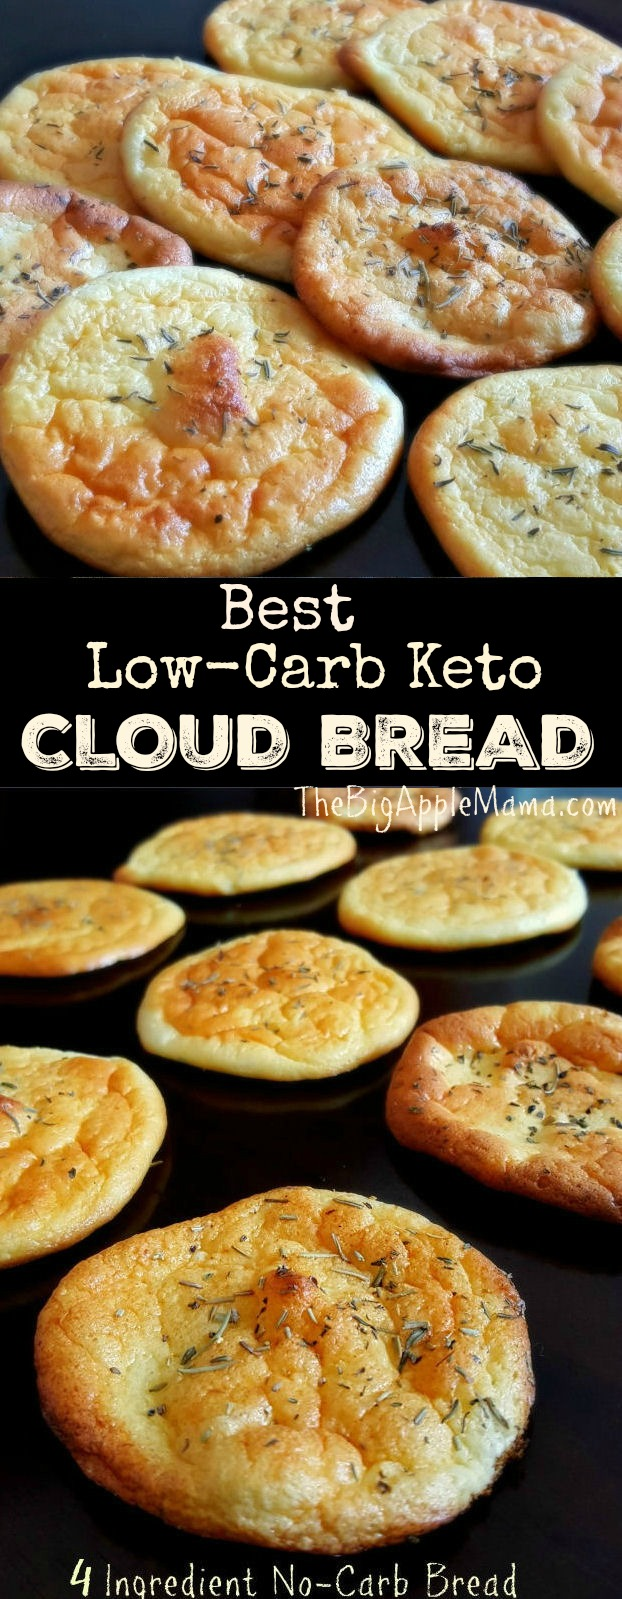 Best Low-Carb Keto Cloud Bread, Only 4 simple ingredients